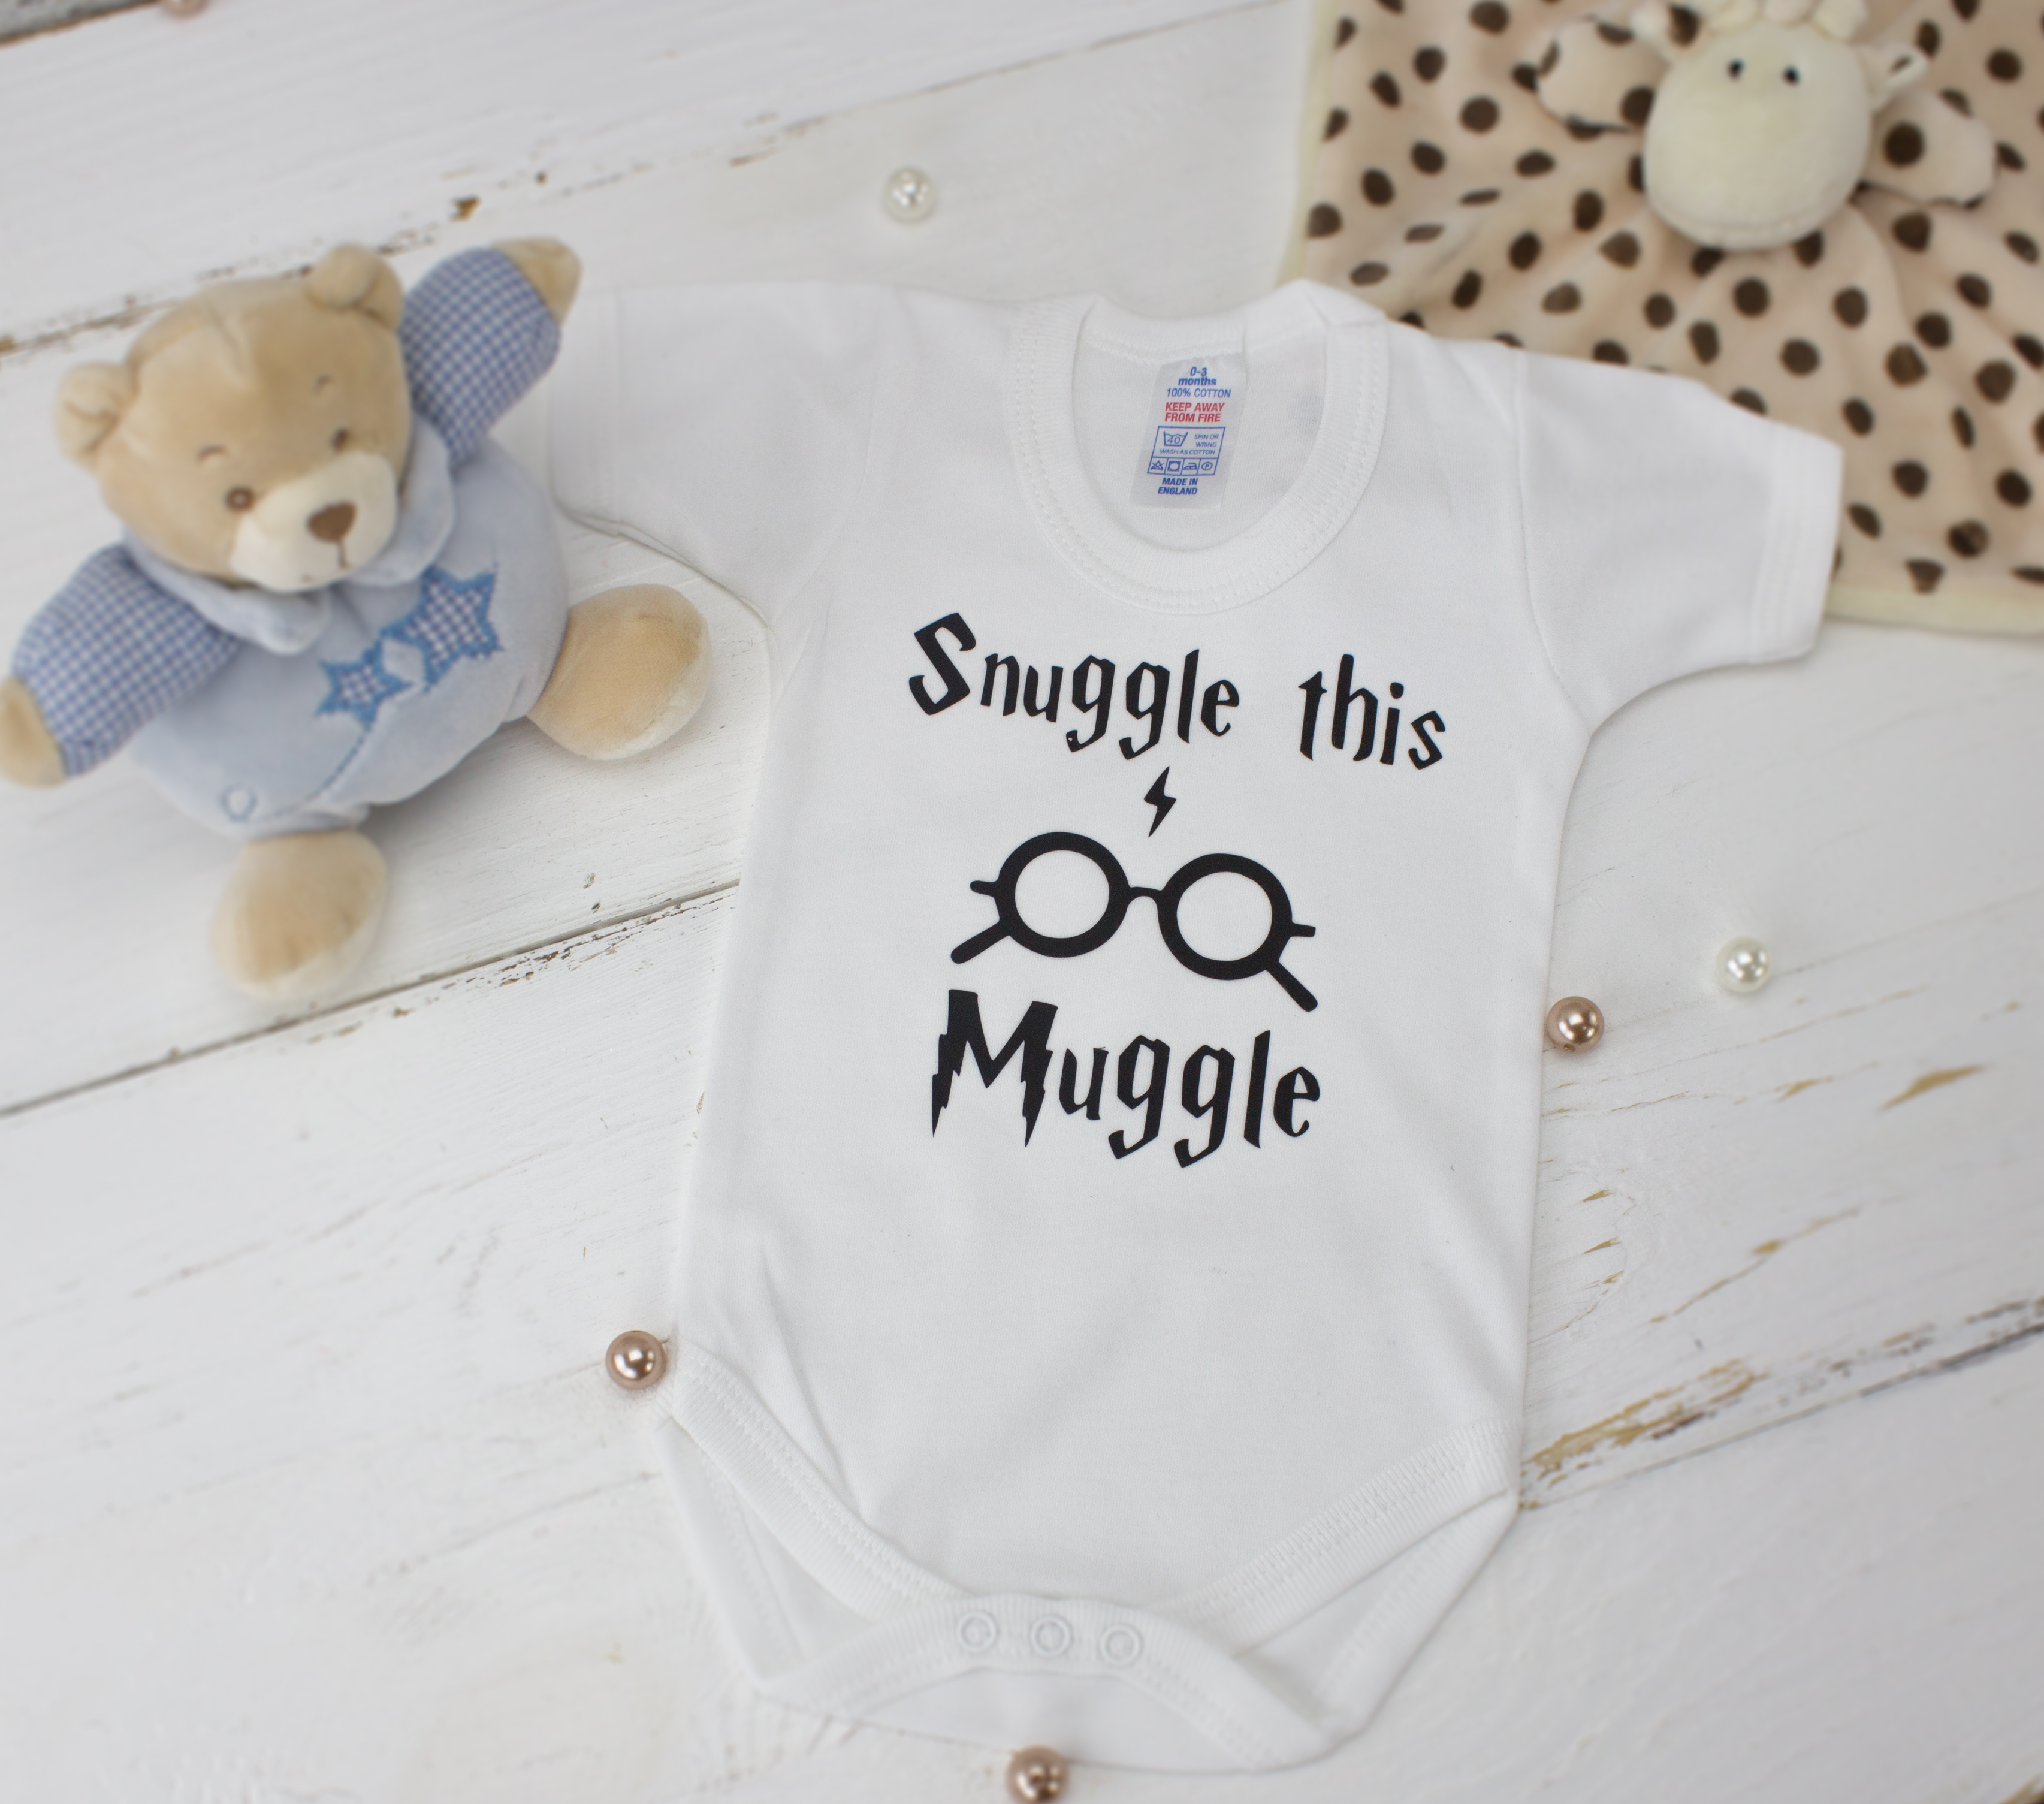 harry potter baby clothes - snuggle this muggle